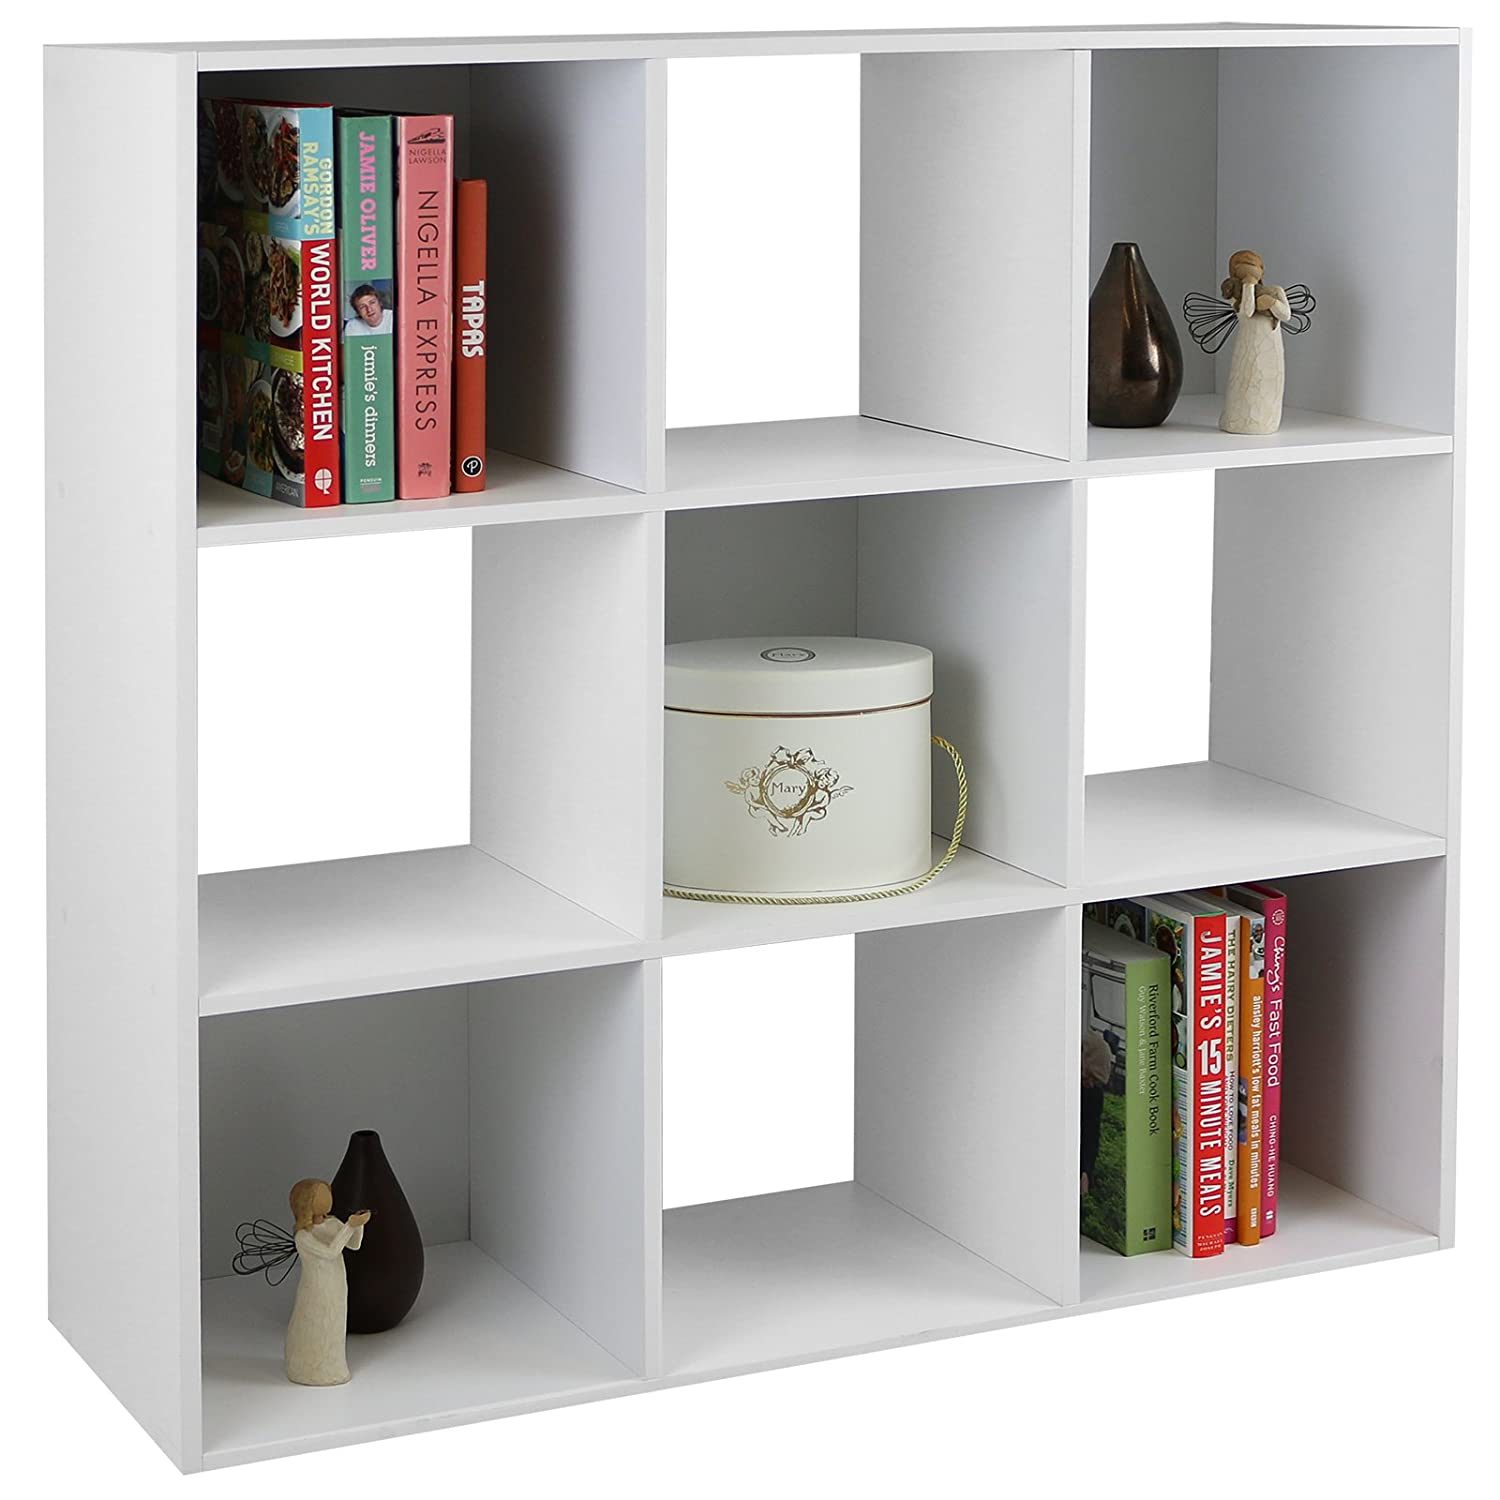 white shelf storage tools to cubes no cube assemble more decorative displays bookshelf easy books items com and housing hold dp accessories great amazon